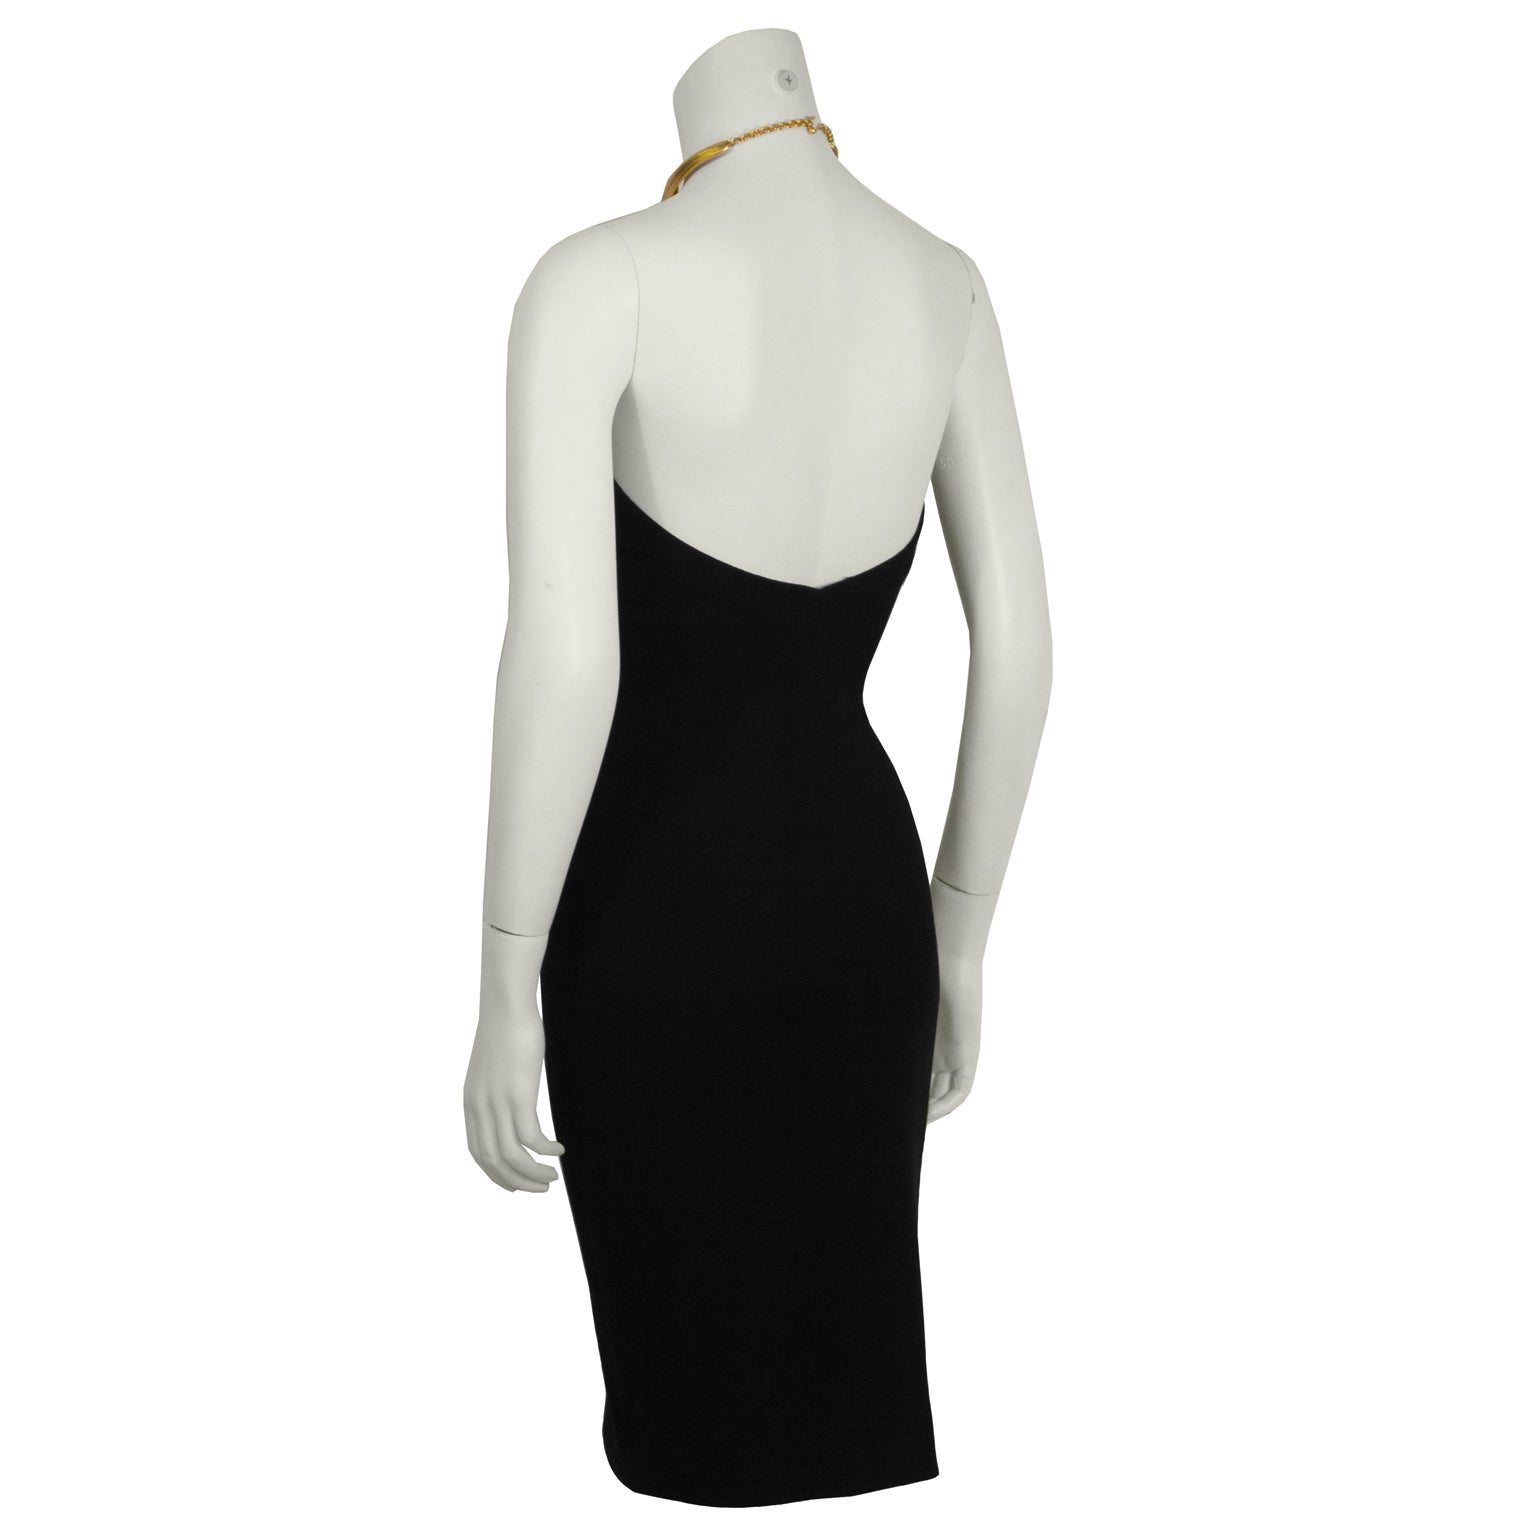 a59ffa4f27 Early 1990 s Donna Karan Black Halter Dress with Gold Choker at 1stdibs